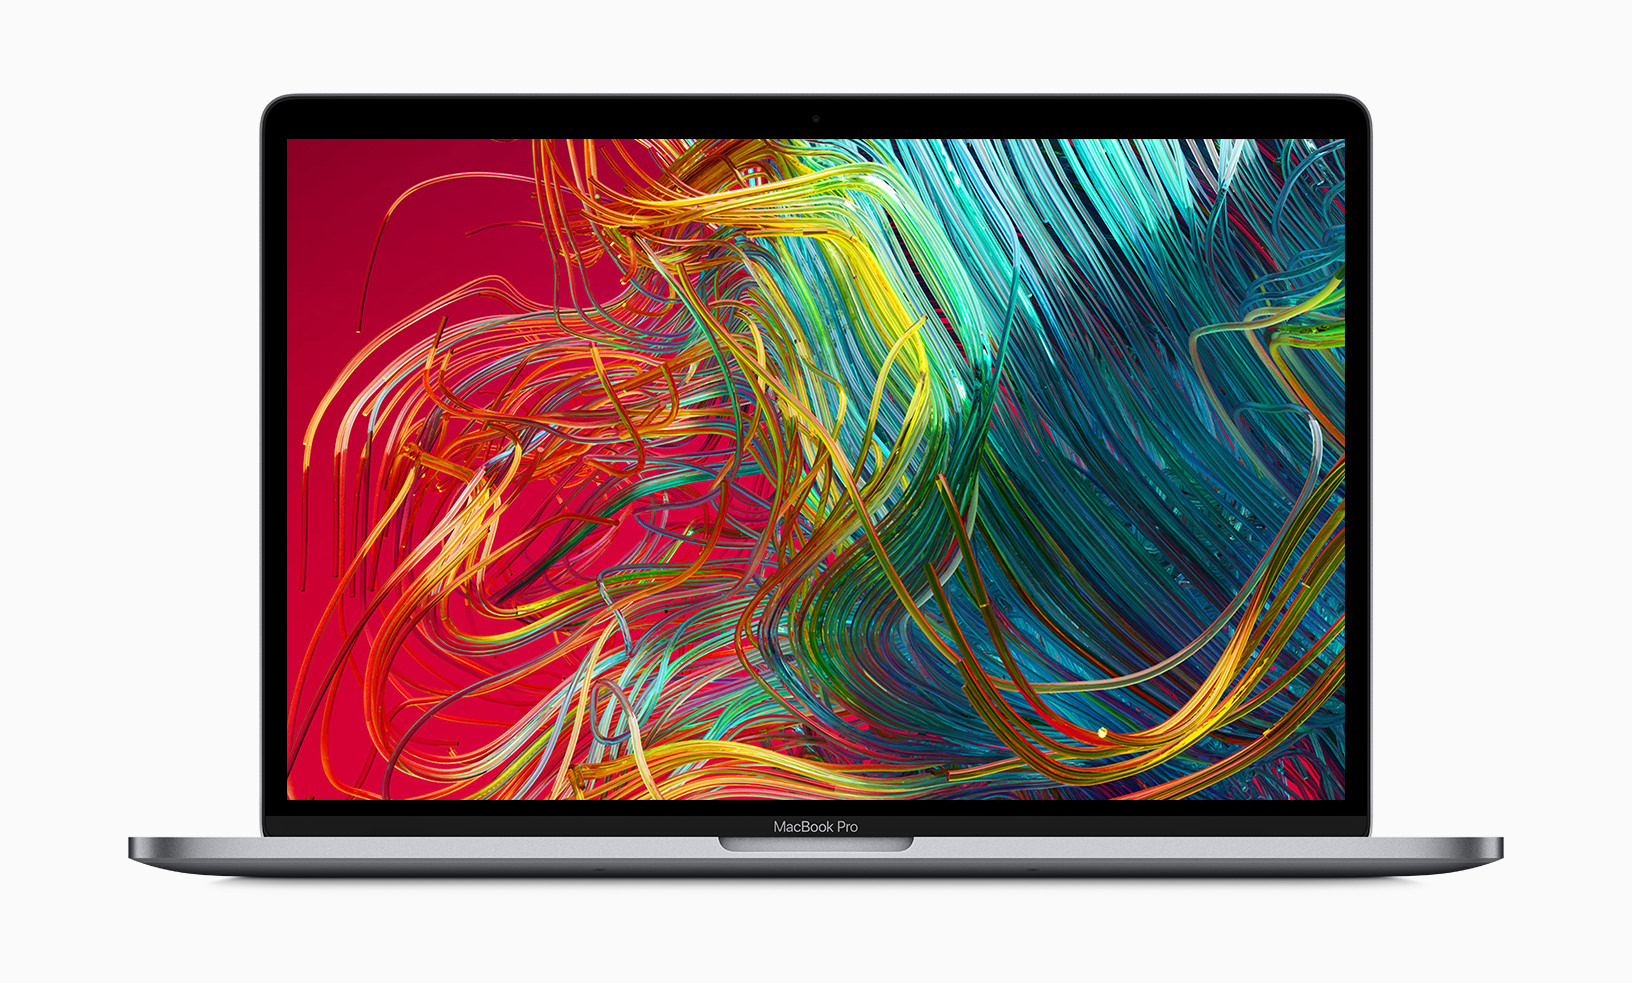 Nuovi MacBook Pro da Apple presso Shift a Como 1